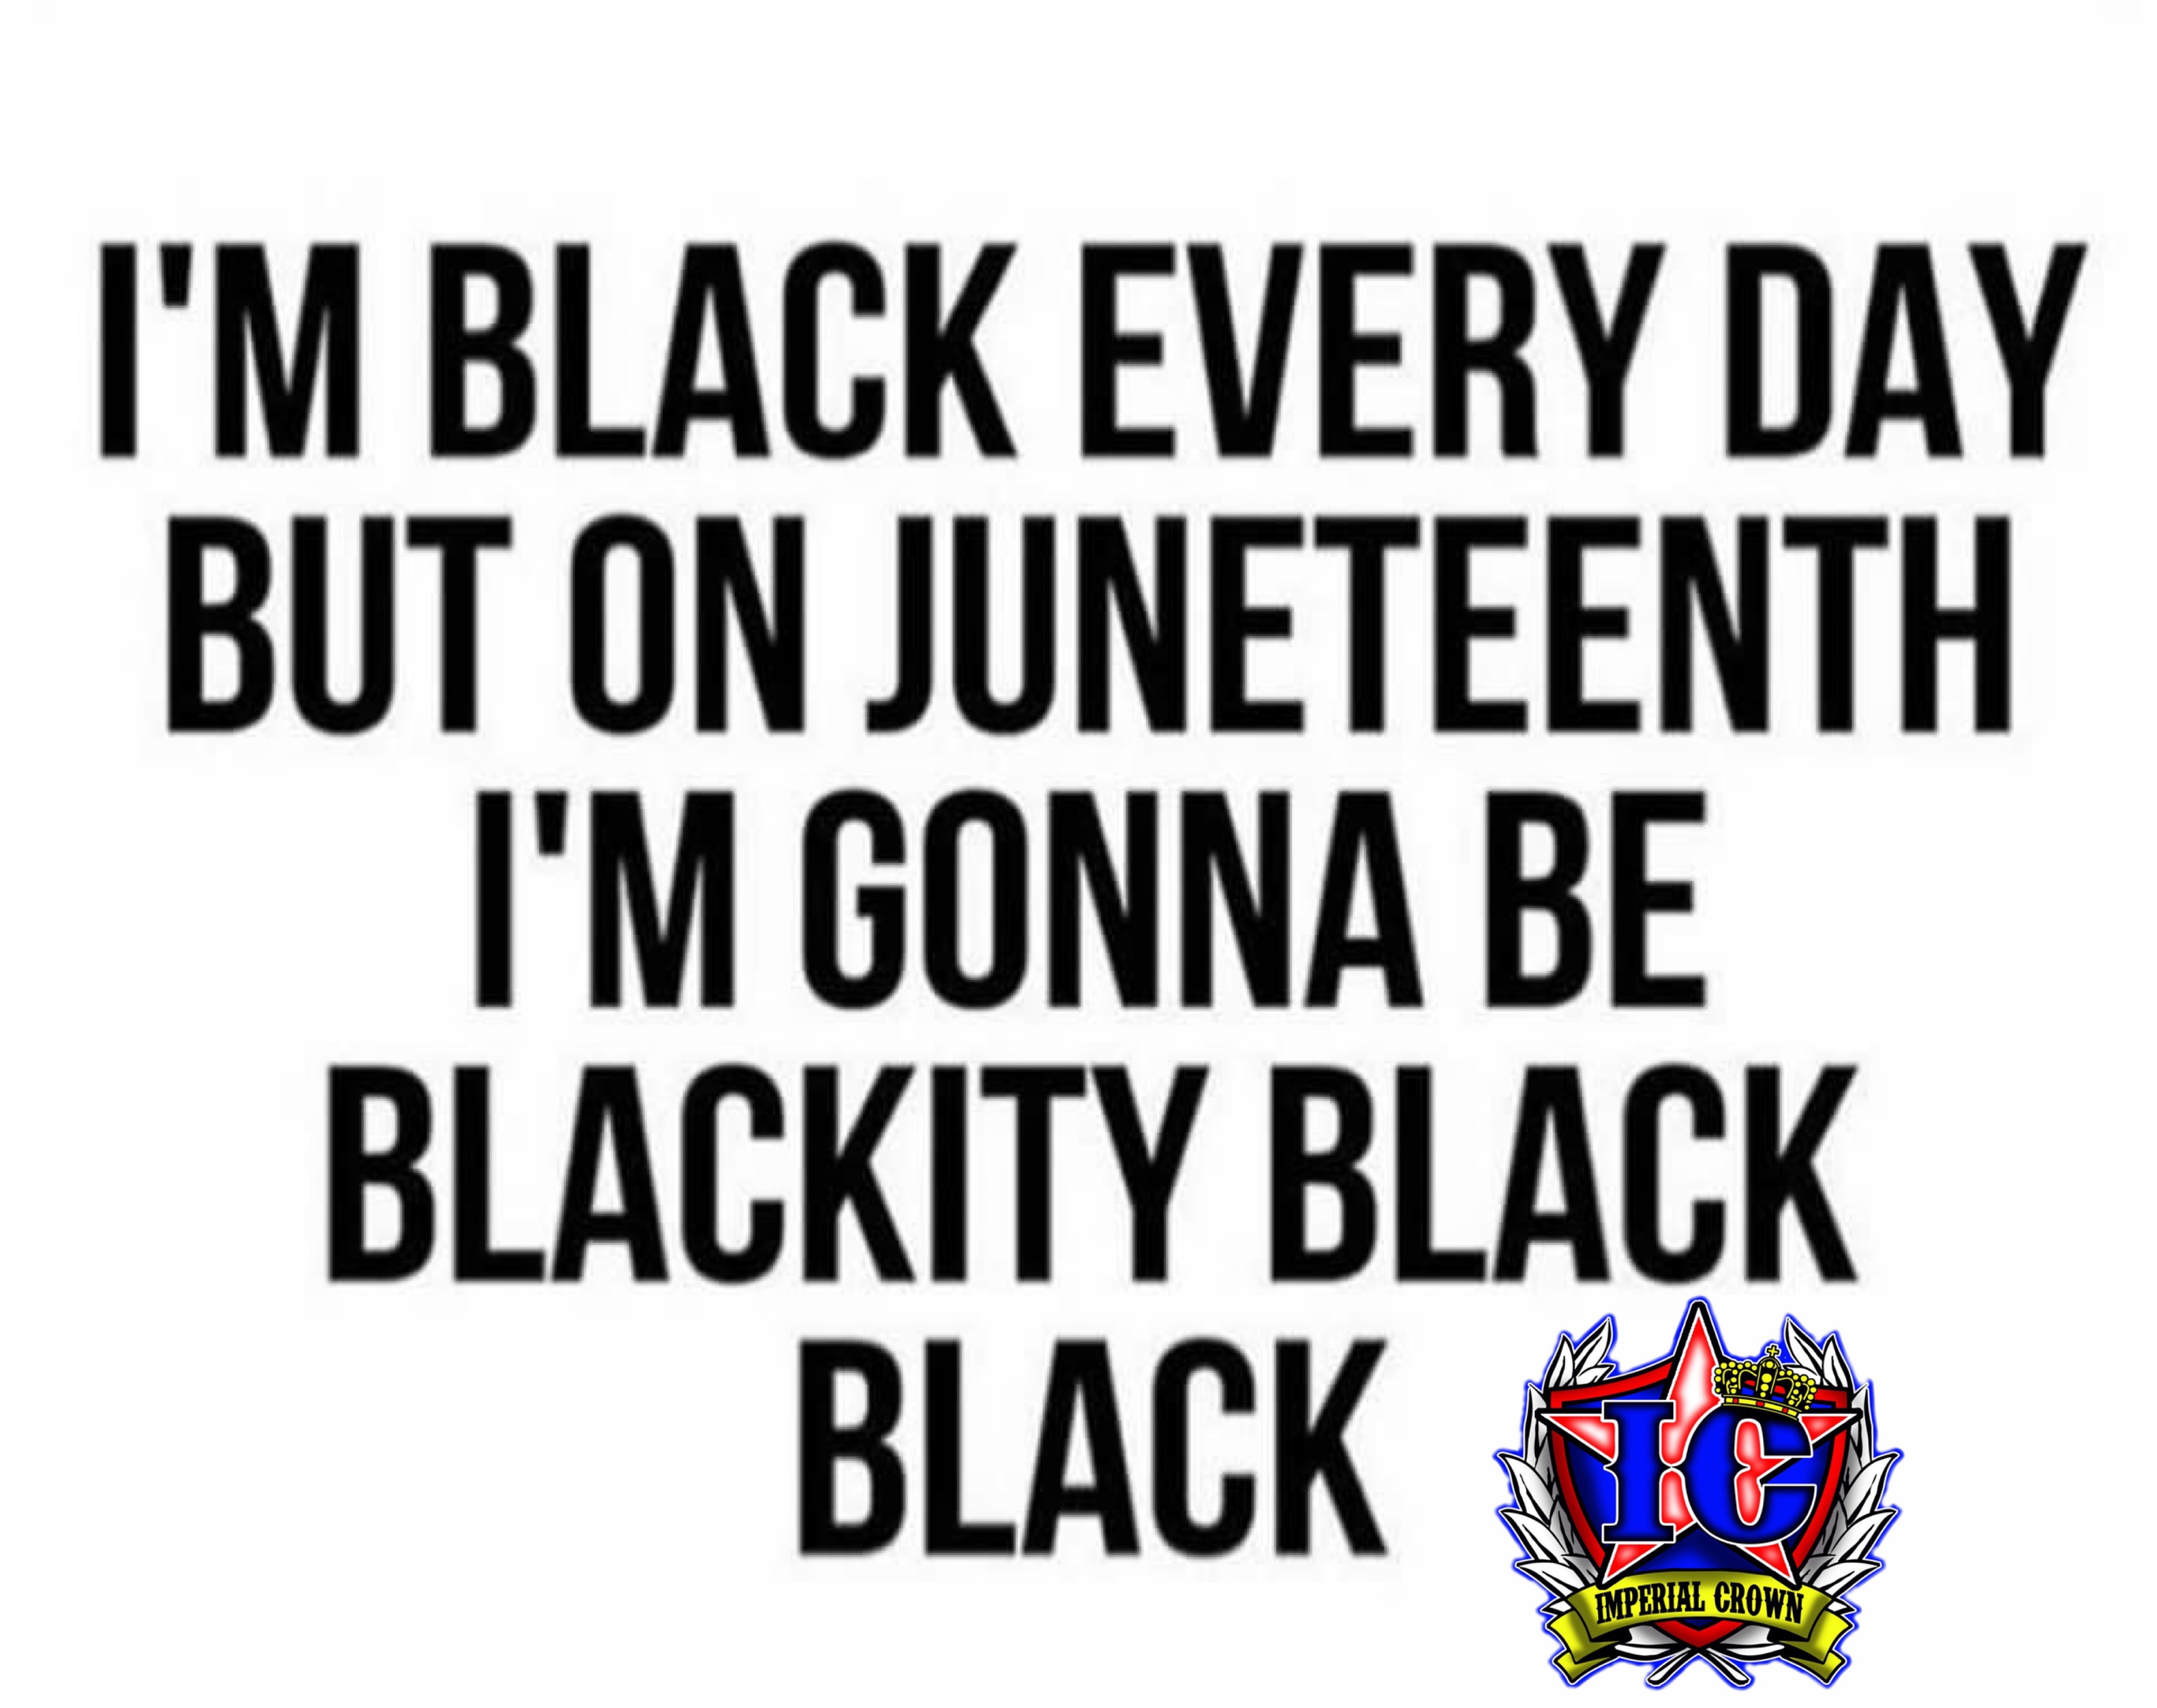 I'm black every day but on Juneteenth I'm gonna be blackity black black